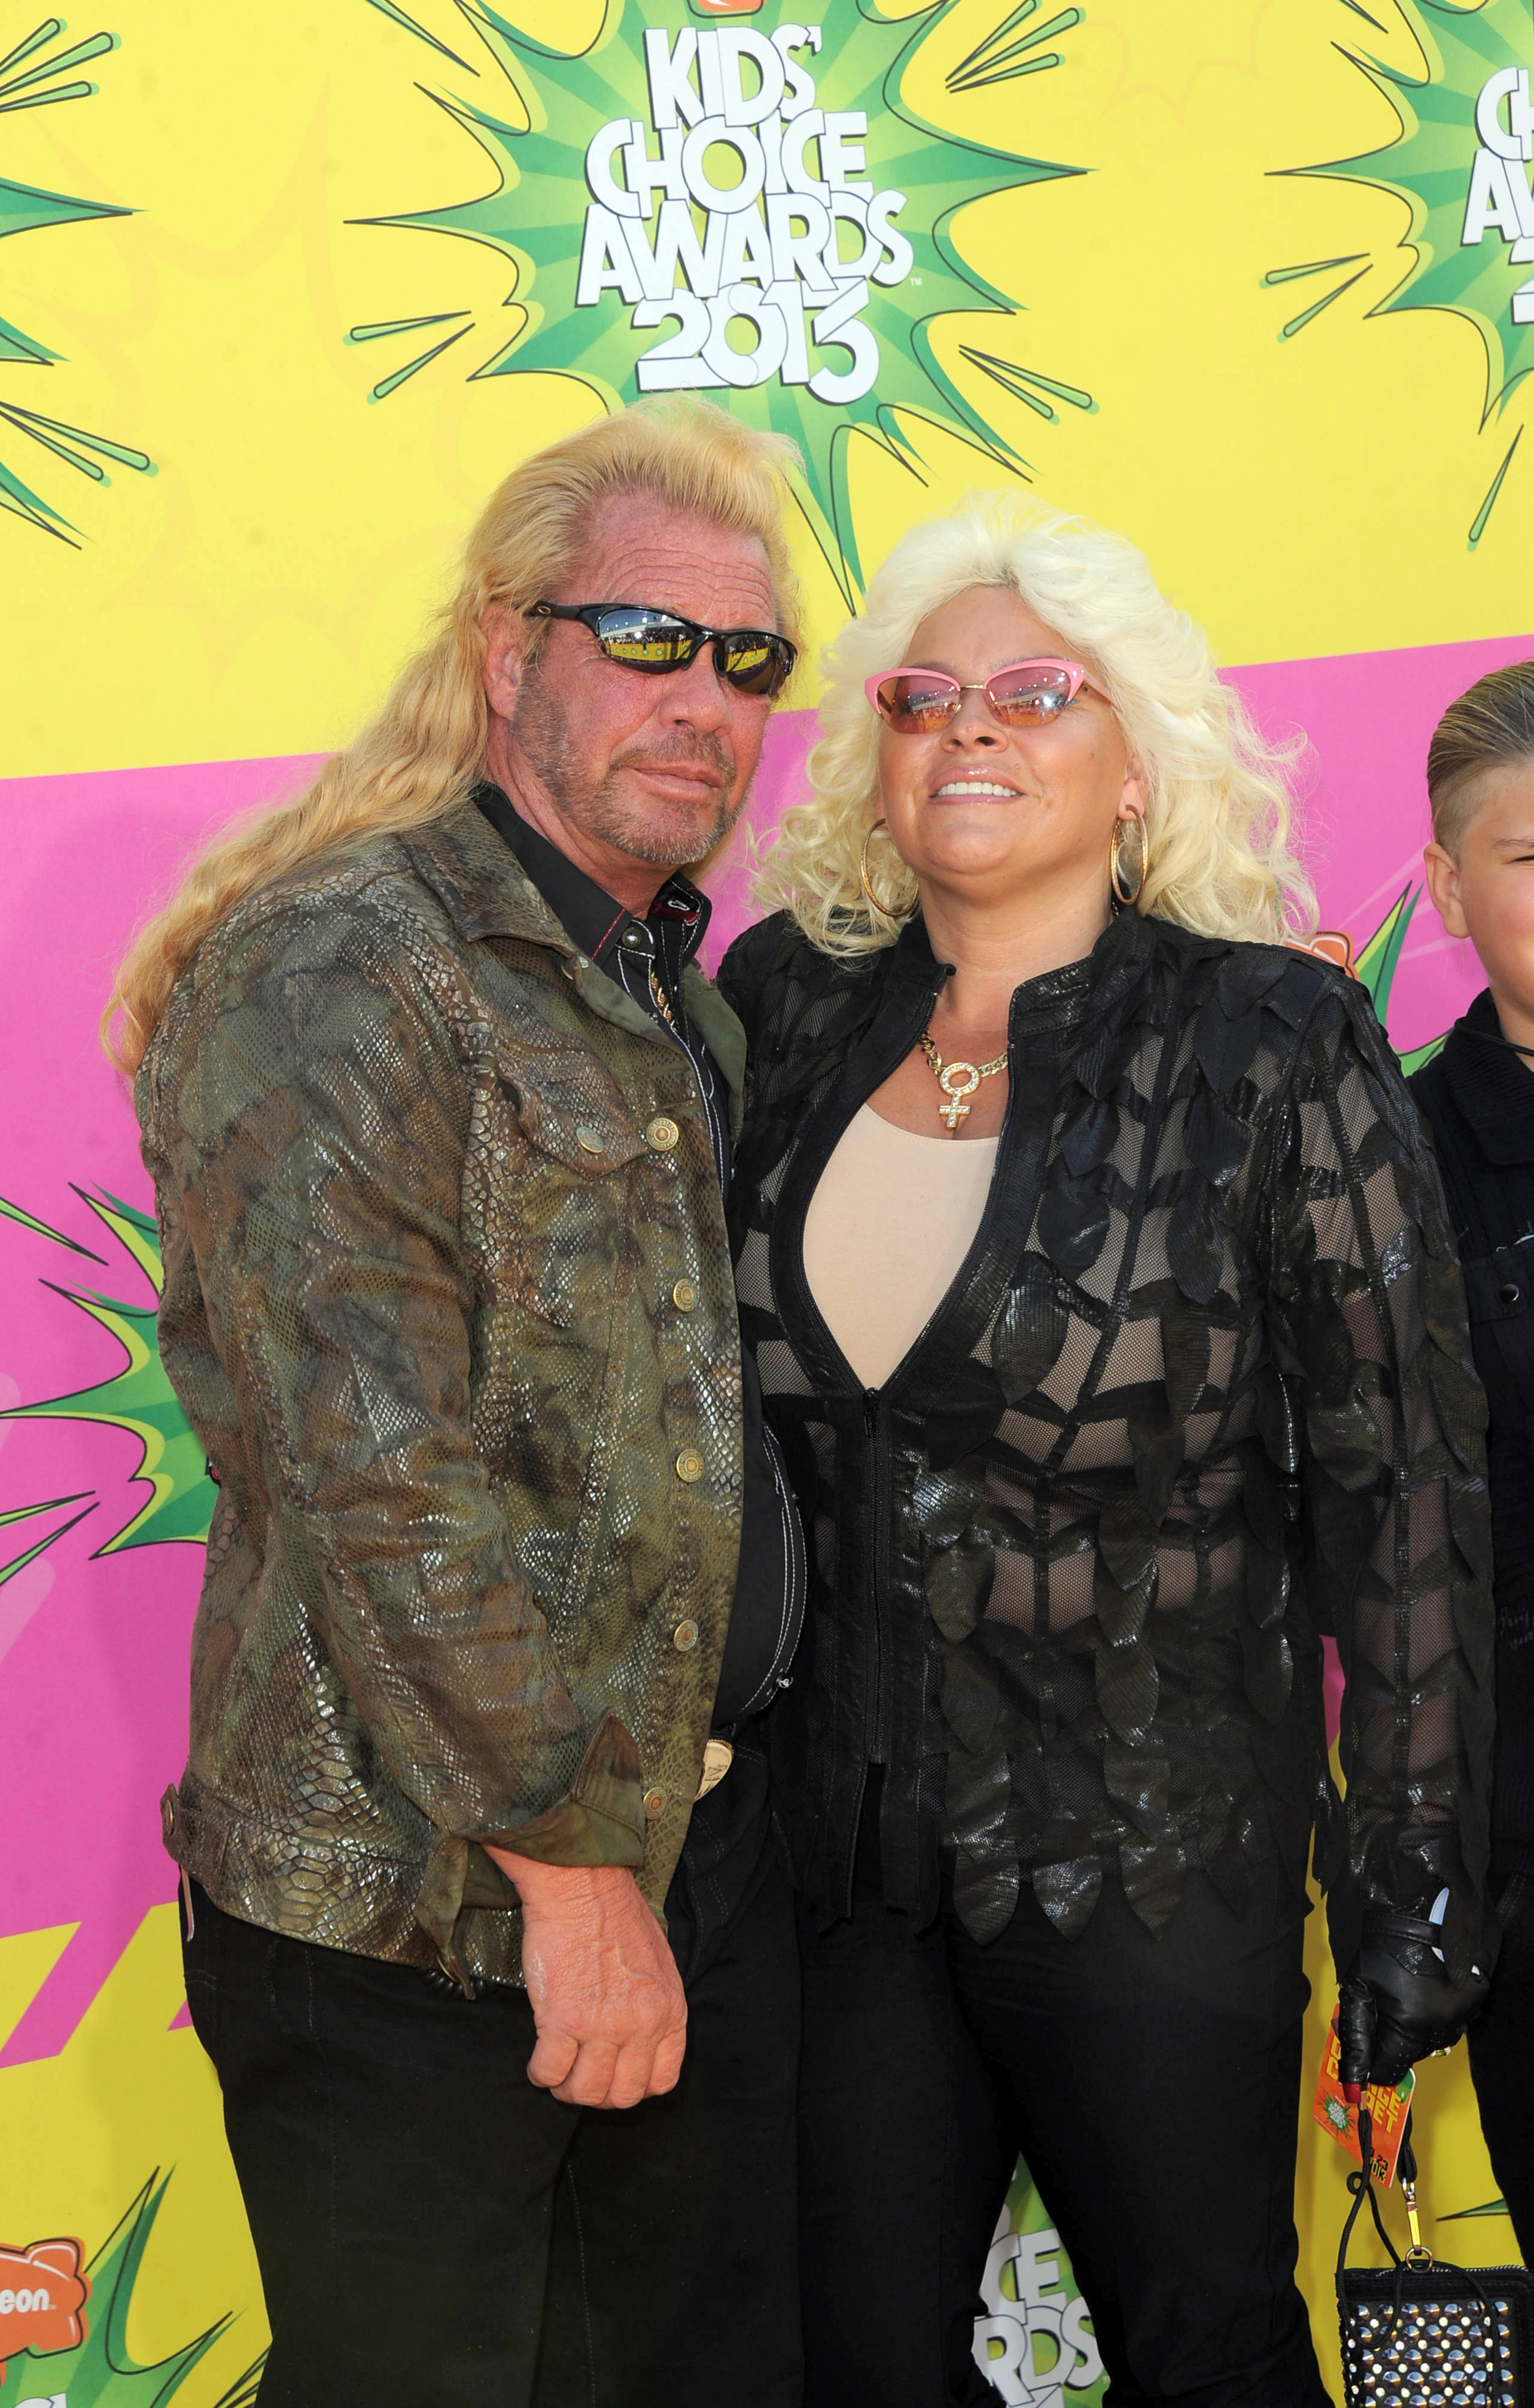 Beth Chapman From Dog The Bounty Hunter Placed In Medically